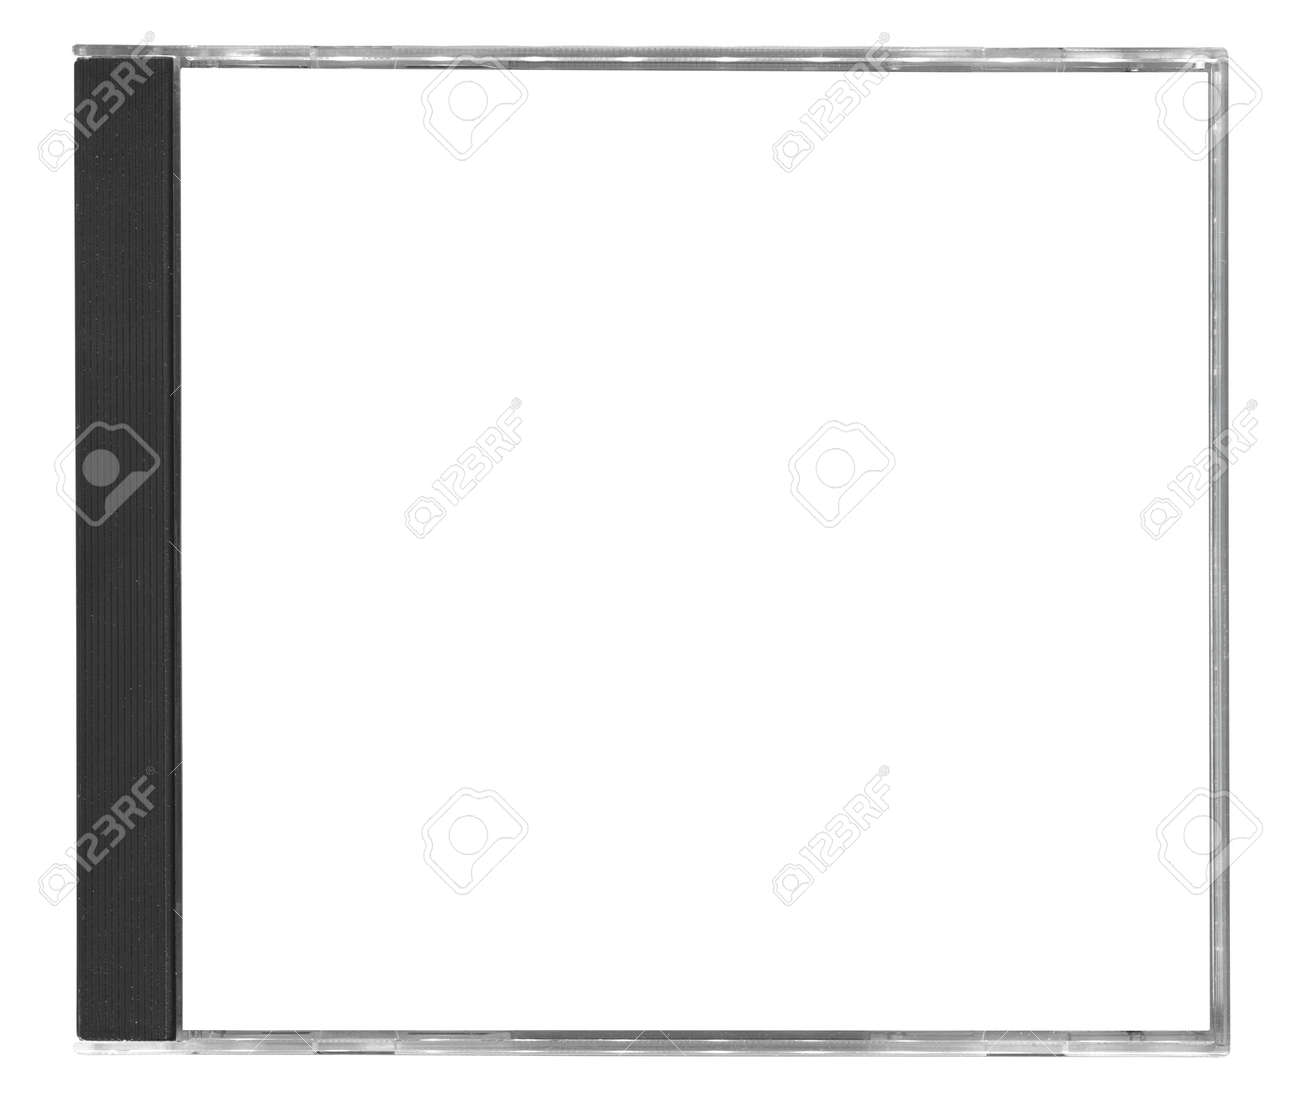 Blank Cd Cover Isolated On White Background Stock Photo, Picture ...